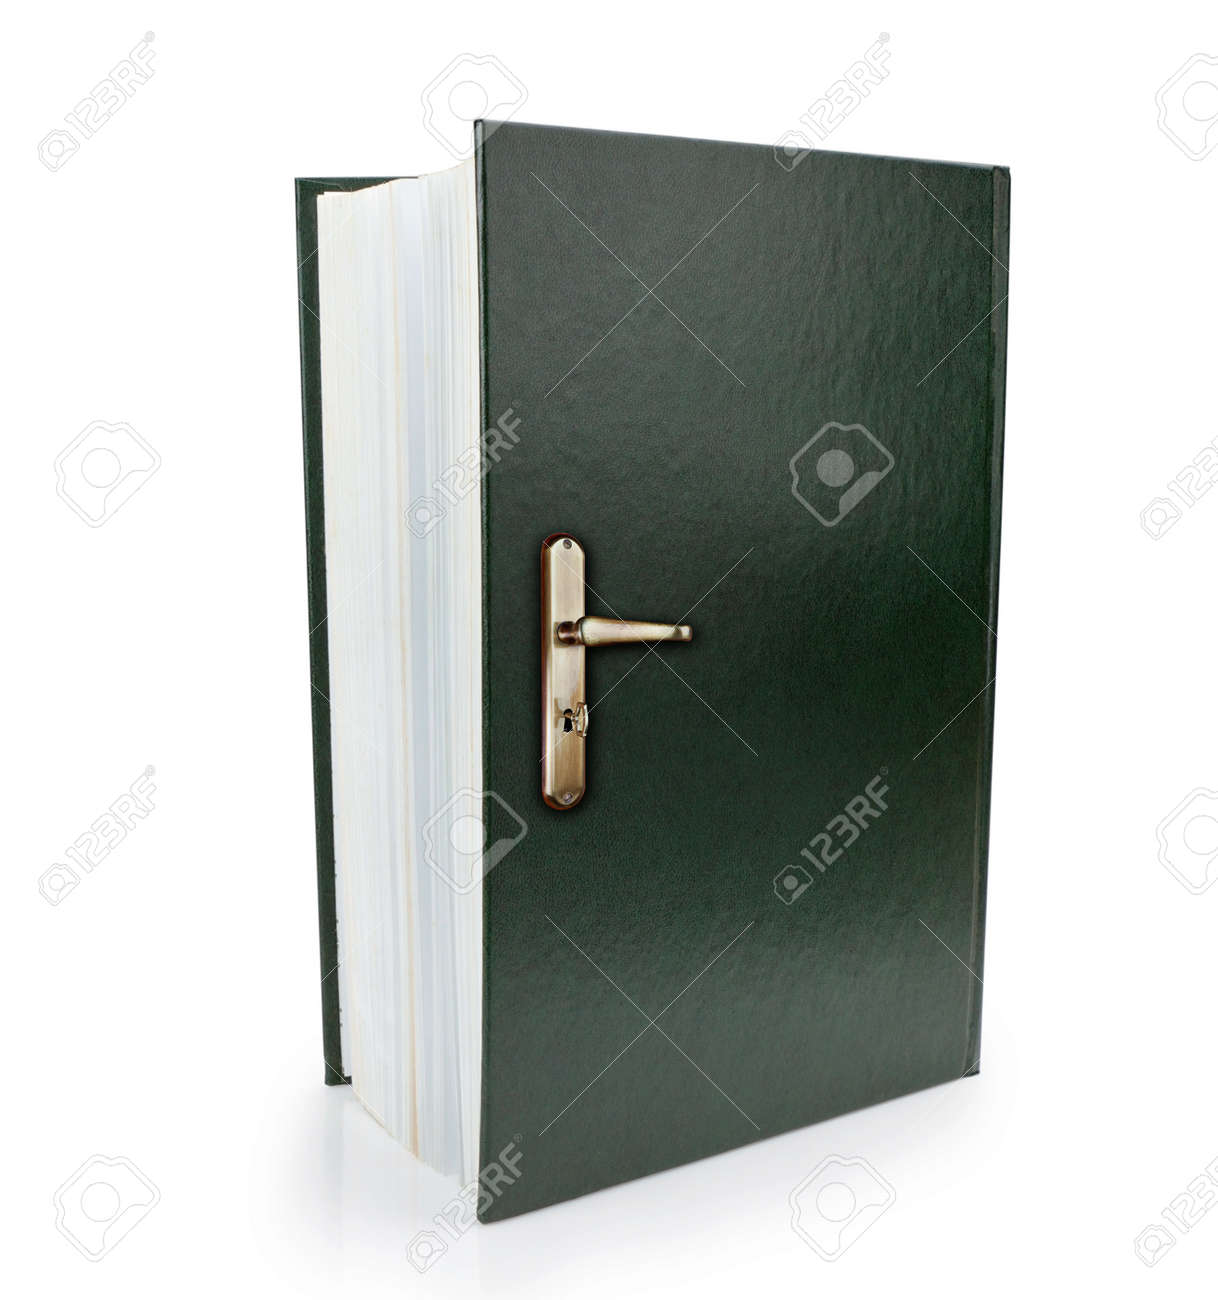 Open Book And Doorknob Symbol Of Gaining Knowledge And Wisdom Stock